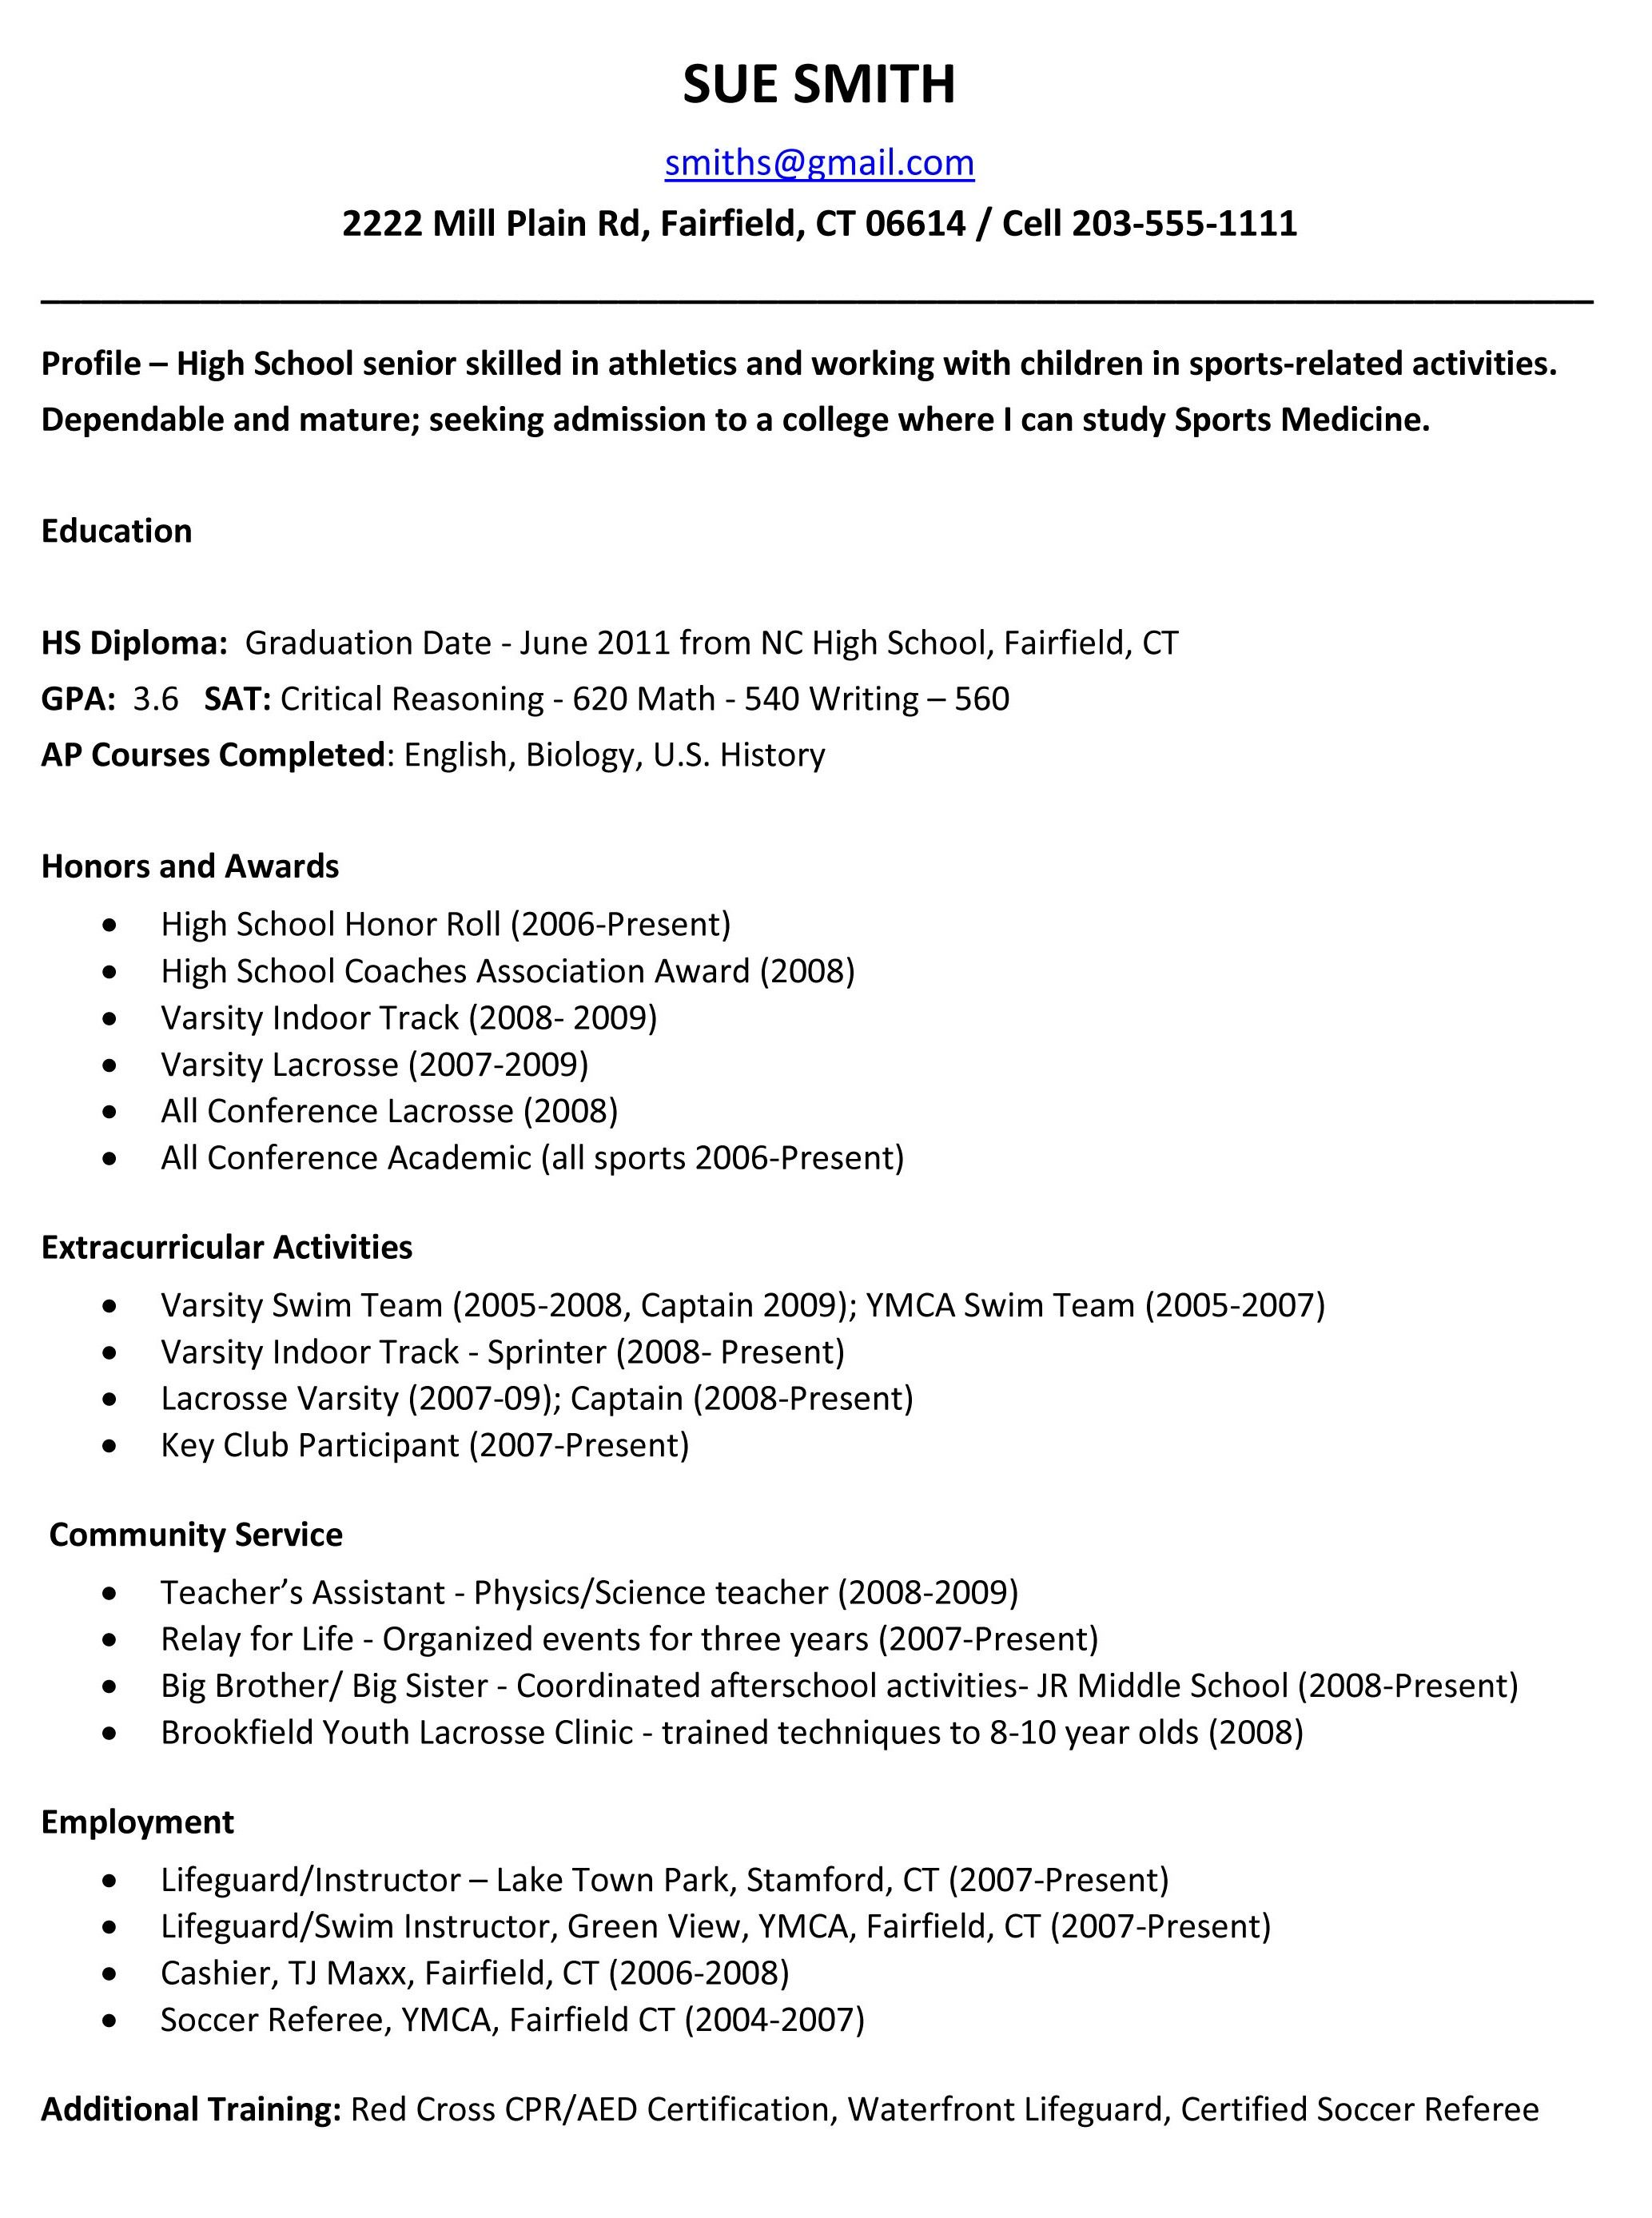 Example Resumes Example Resume For High School Students For College Applications